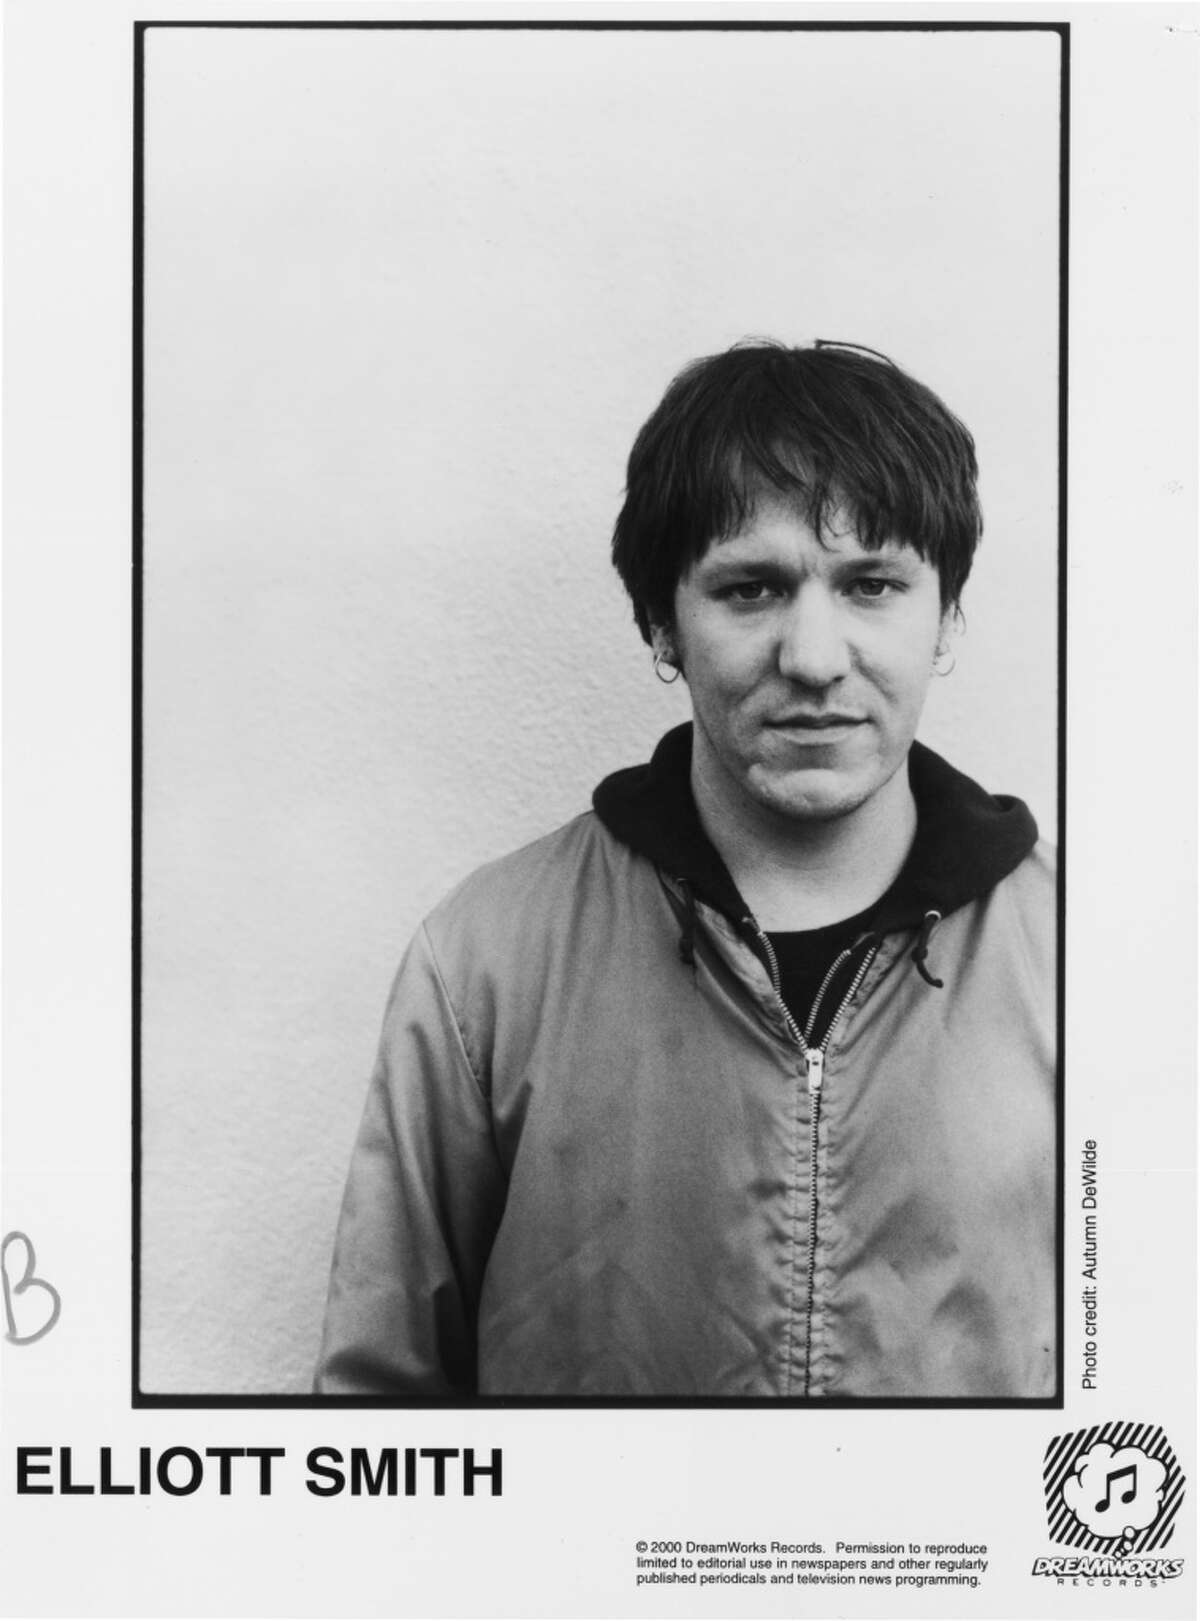 Elliott Smith's